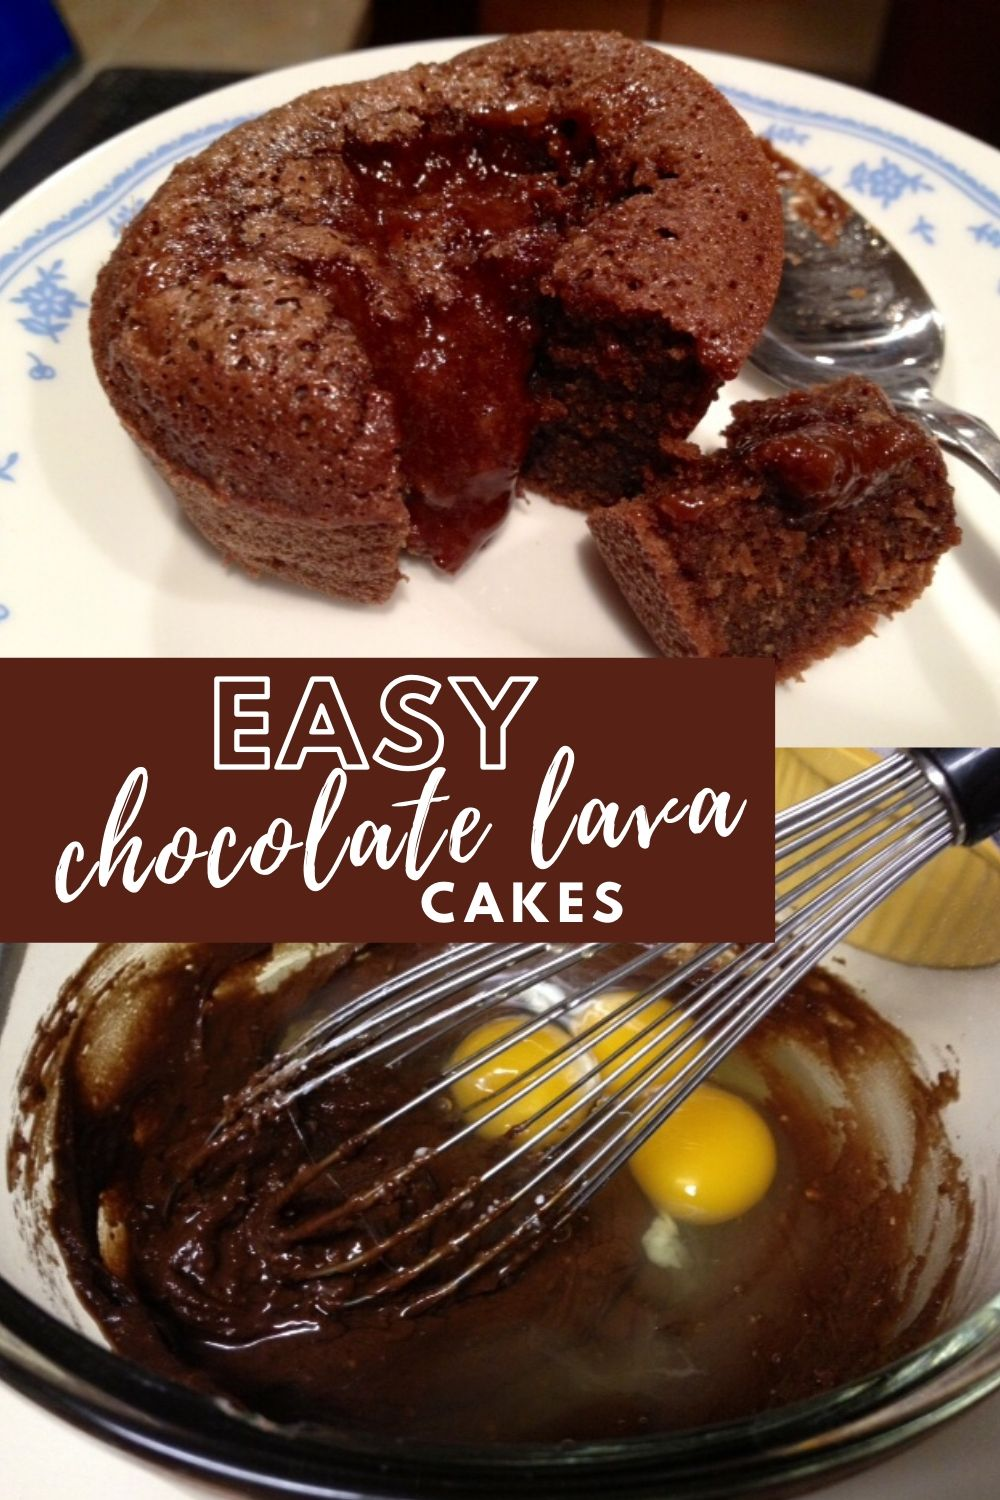 Easy Chocolate Lava Cakes | These easy homemade chocolate molten lava cakes are delicious and fast, not fussy at all.  Wow friends and family with this special dessert on any night of the week.  Easy chocolate dessert, fast dessert recipe.  #dessertrecipe #chocolatedessert #lavacakes #easydessert